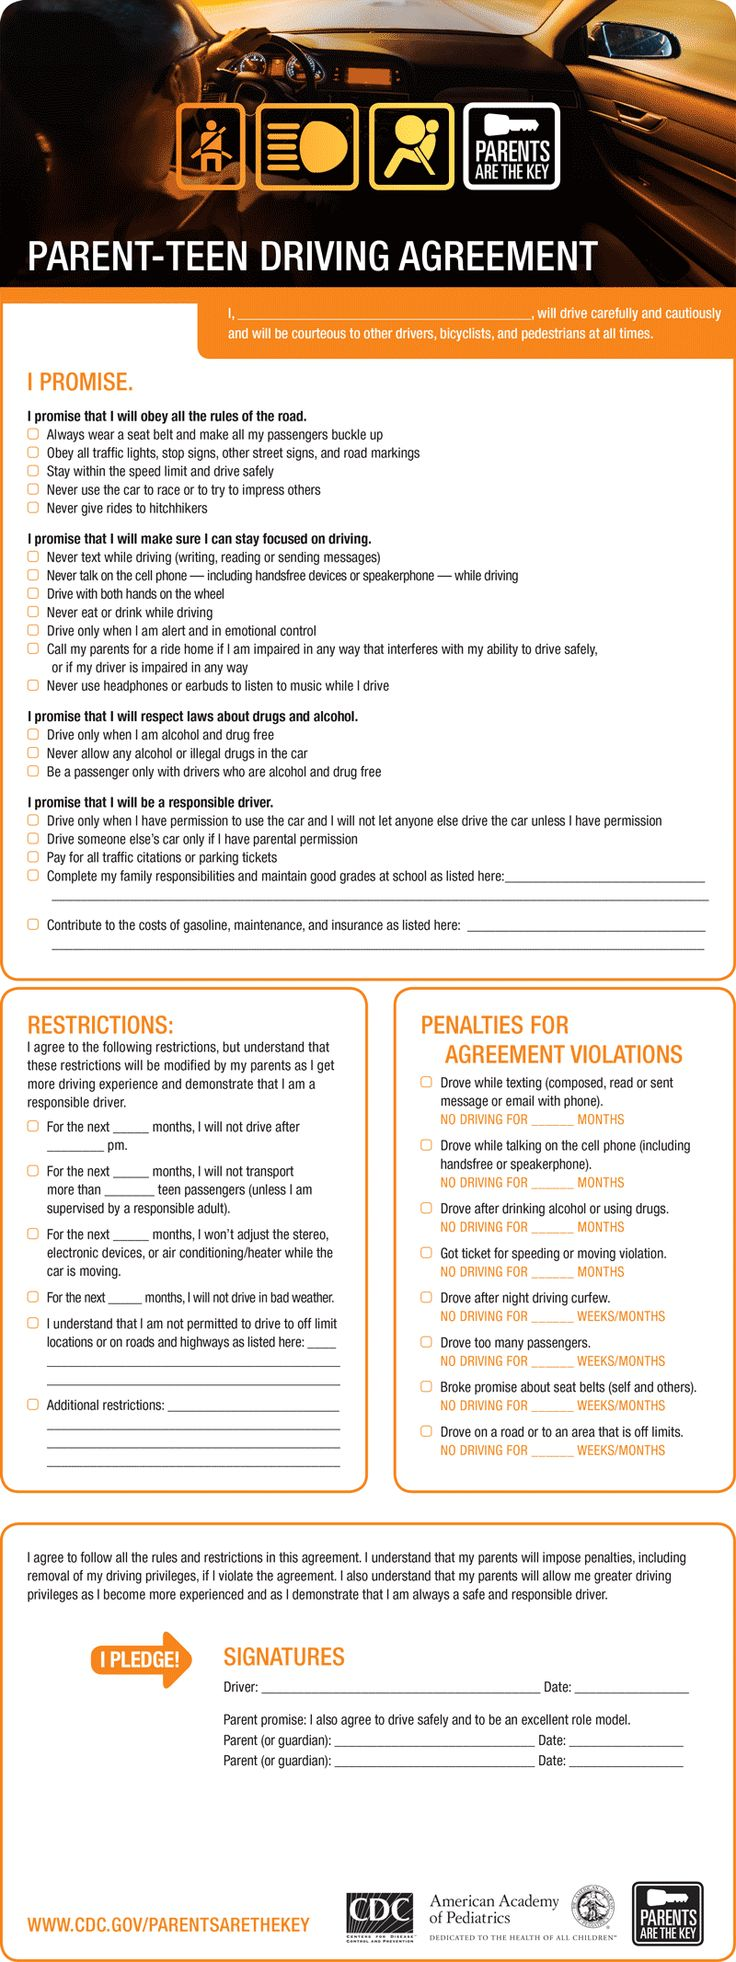 Parent teen driving agreement from CDC found on igottadrive.com